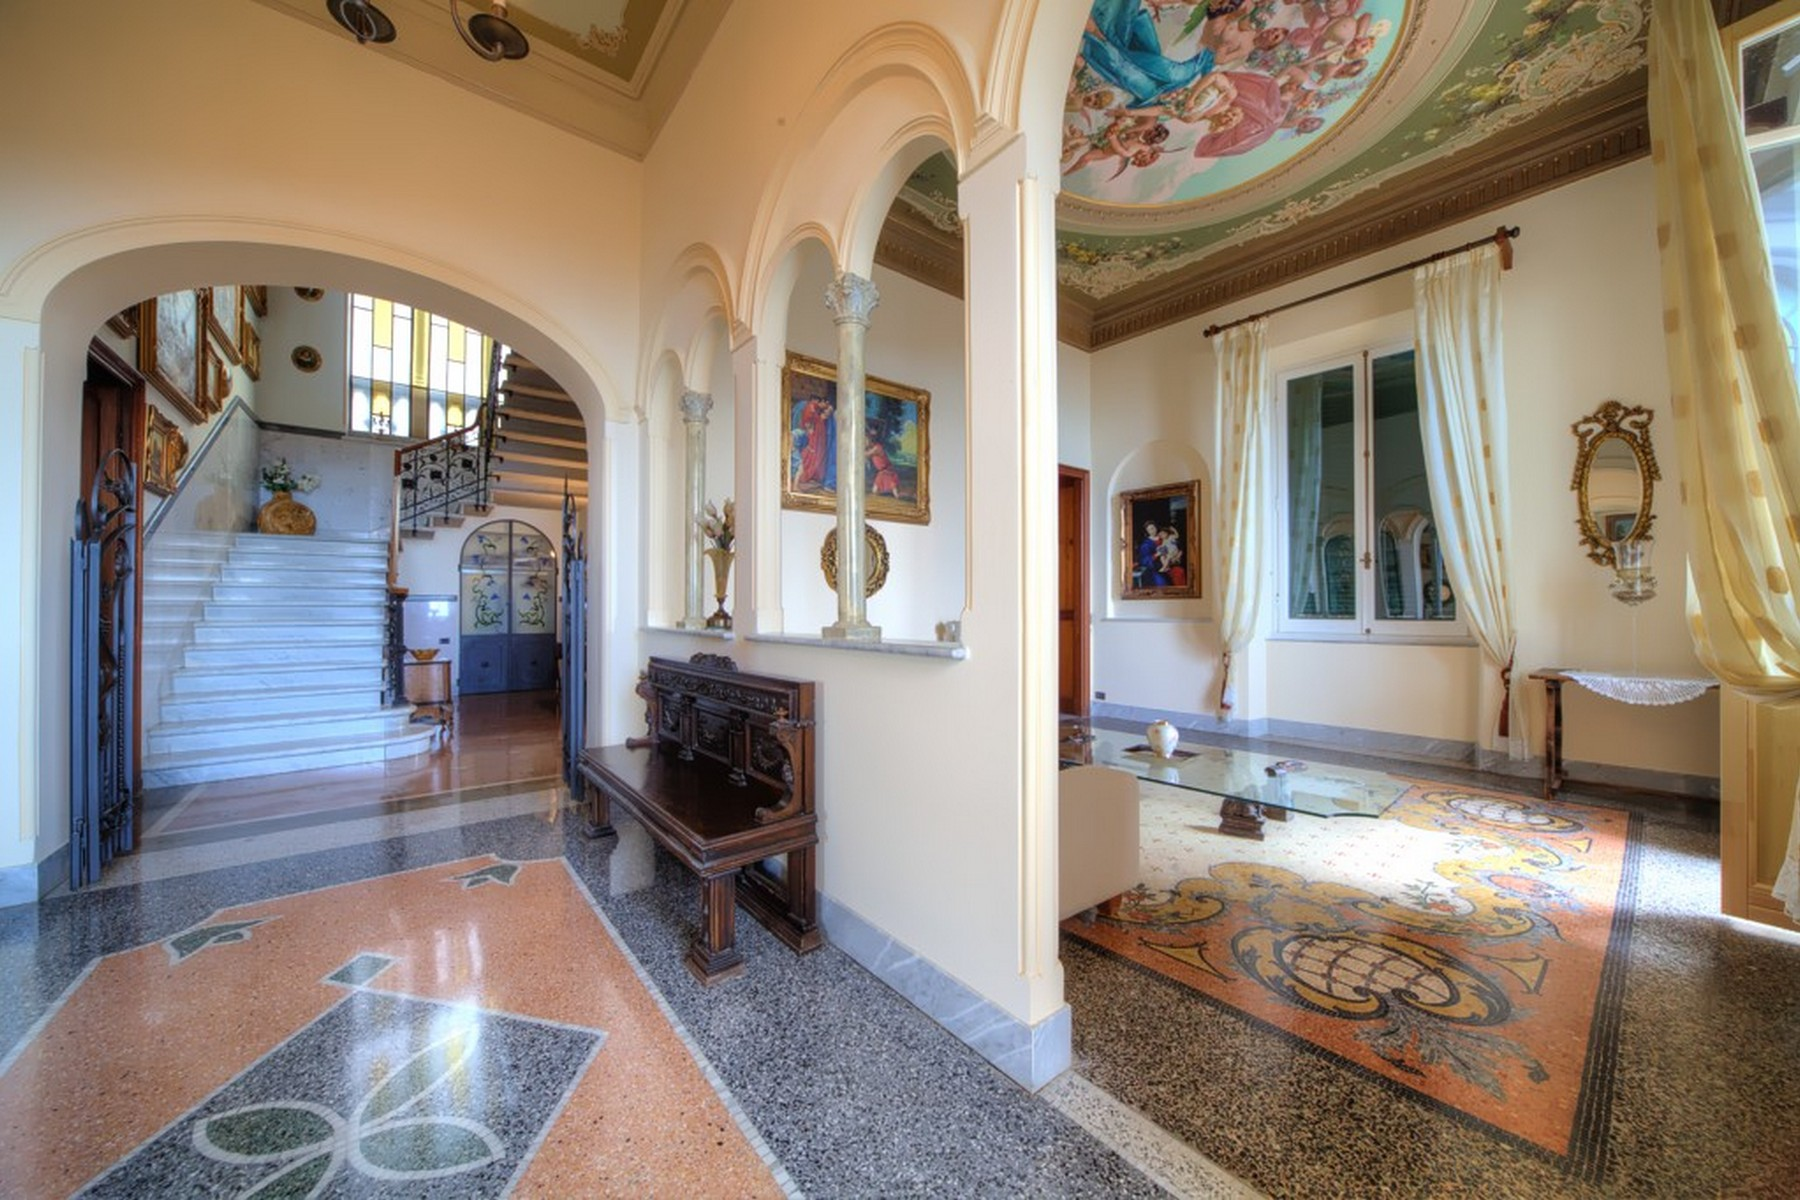 Additional photo for property listing at Art Noveau villa with awe-inspiring views Via XXV Aprile Camogli, Genoa 16032 Italien